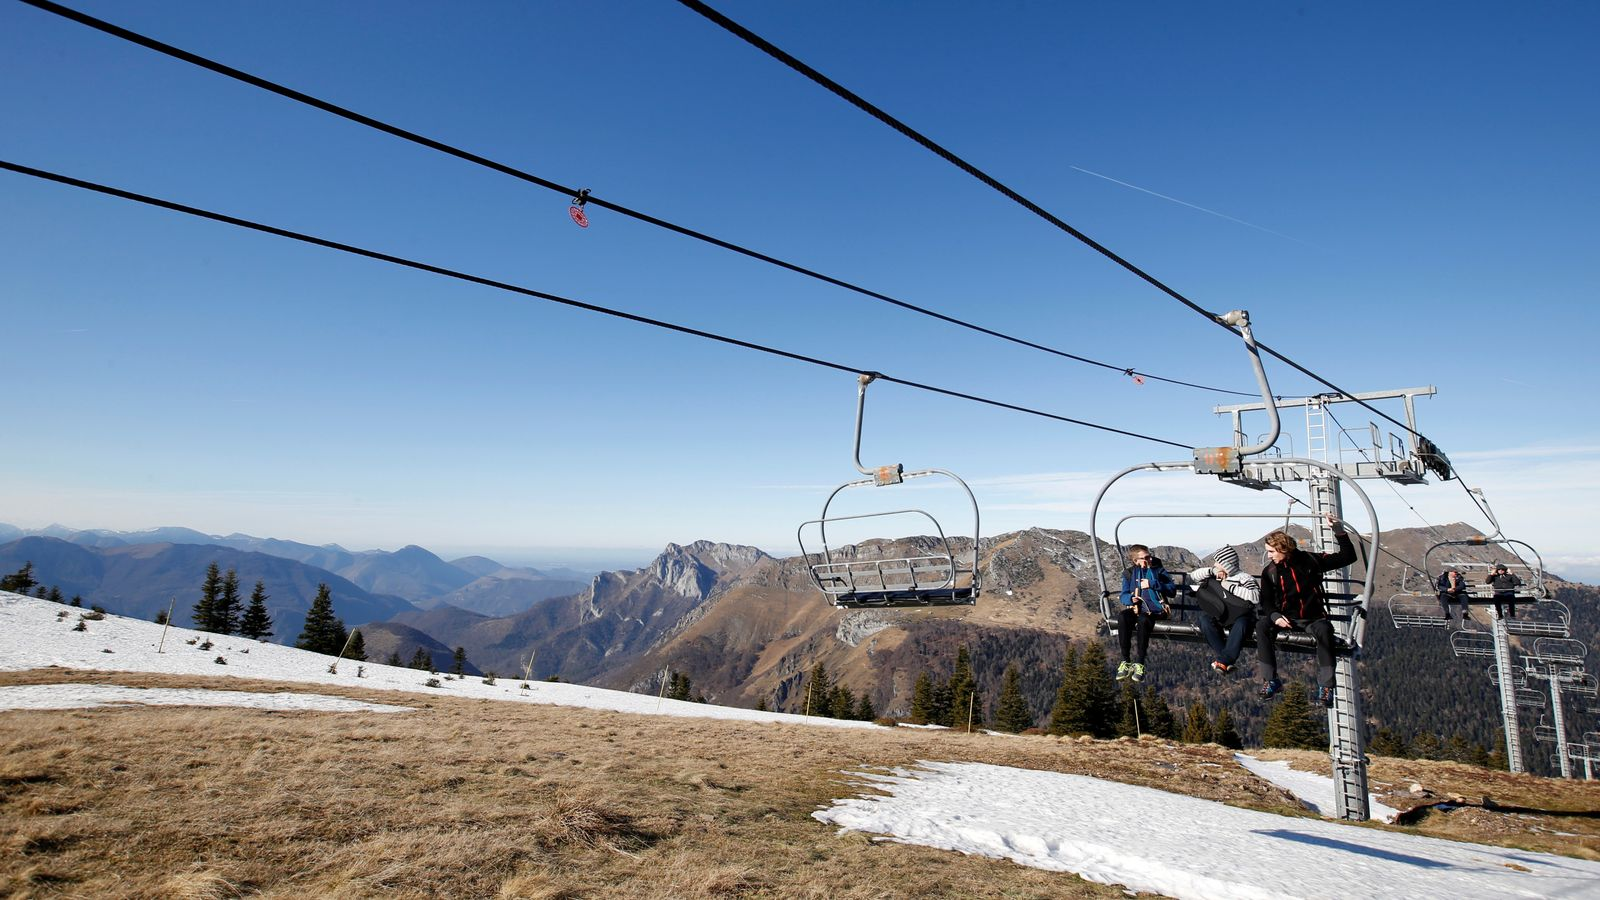 French ski resort closes slopes over 'no snow' for second year in a row